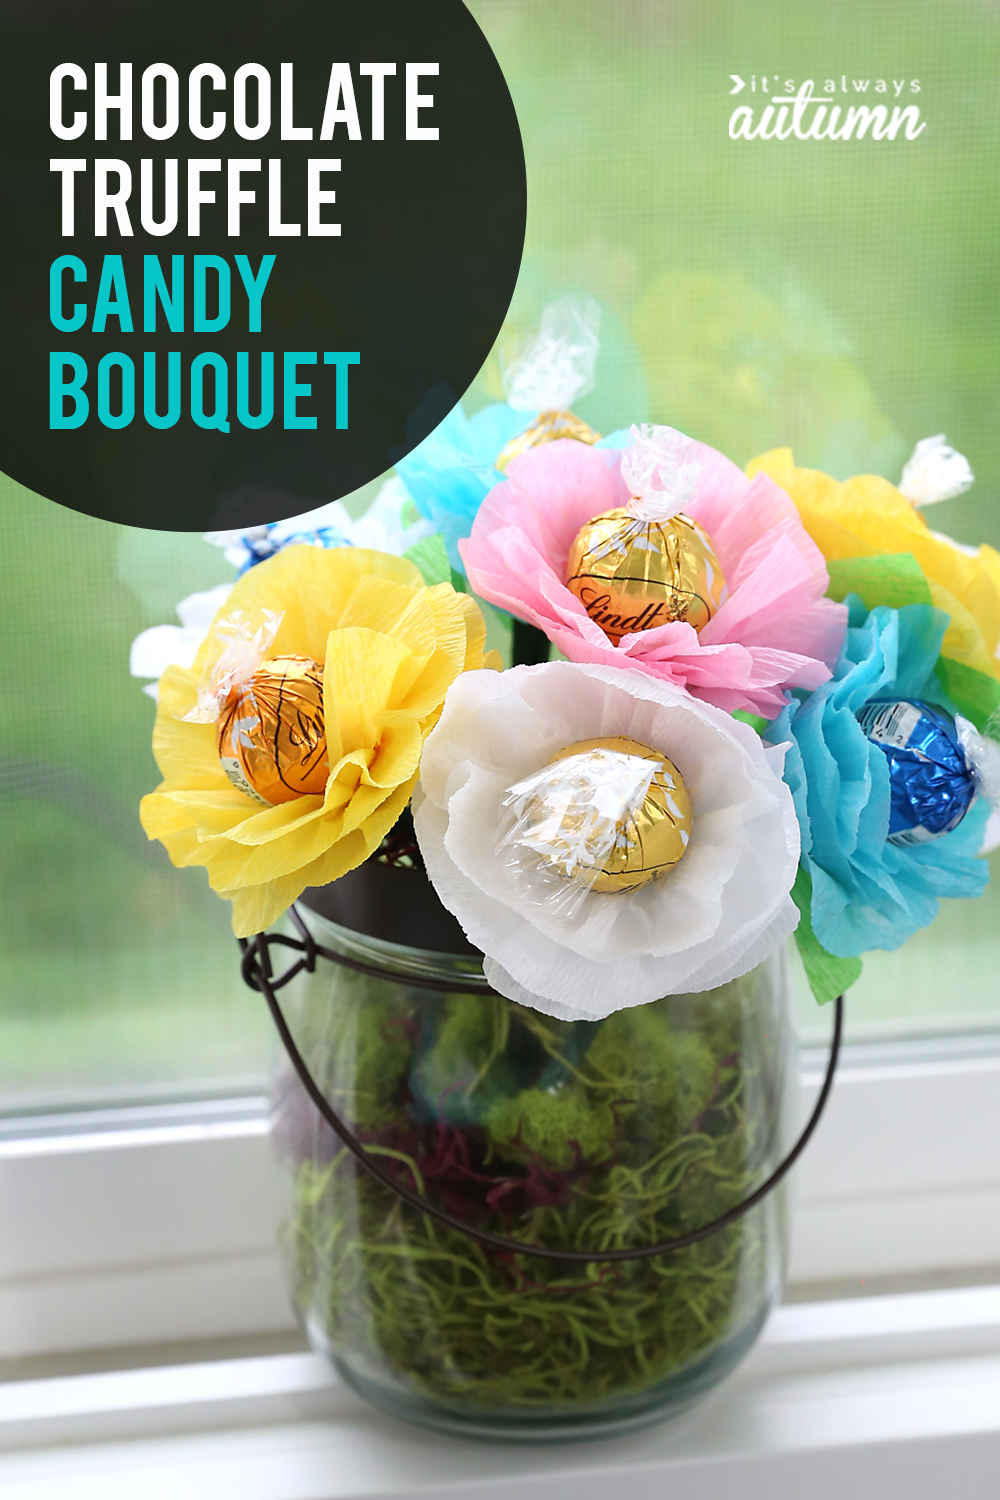 Make A Chocolate Truffle Candy Bouquet Perfect For Moms And Teachers It S Always Autumn